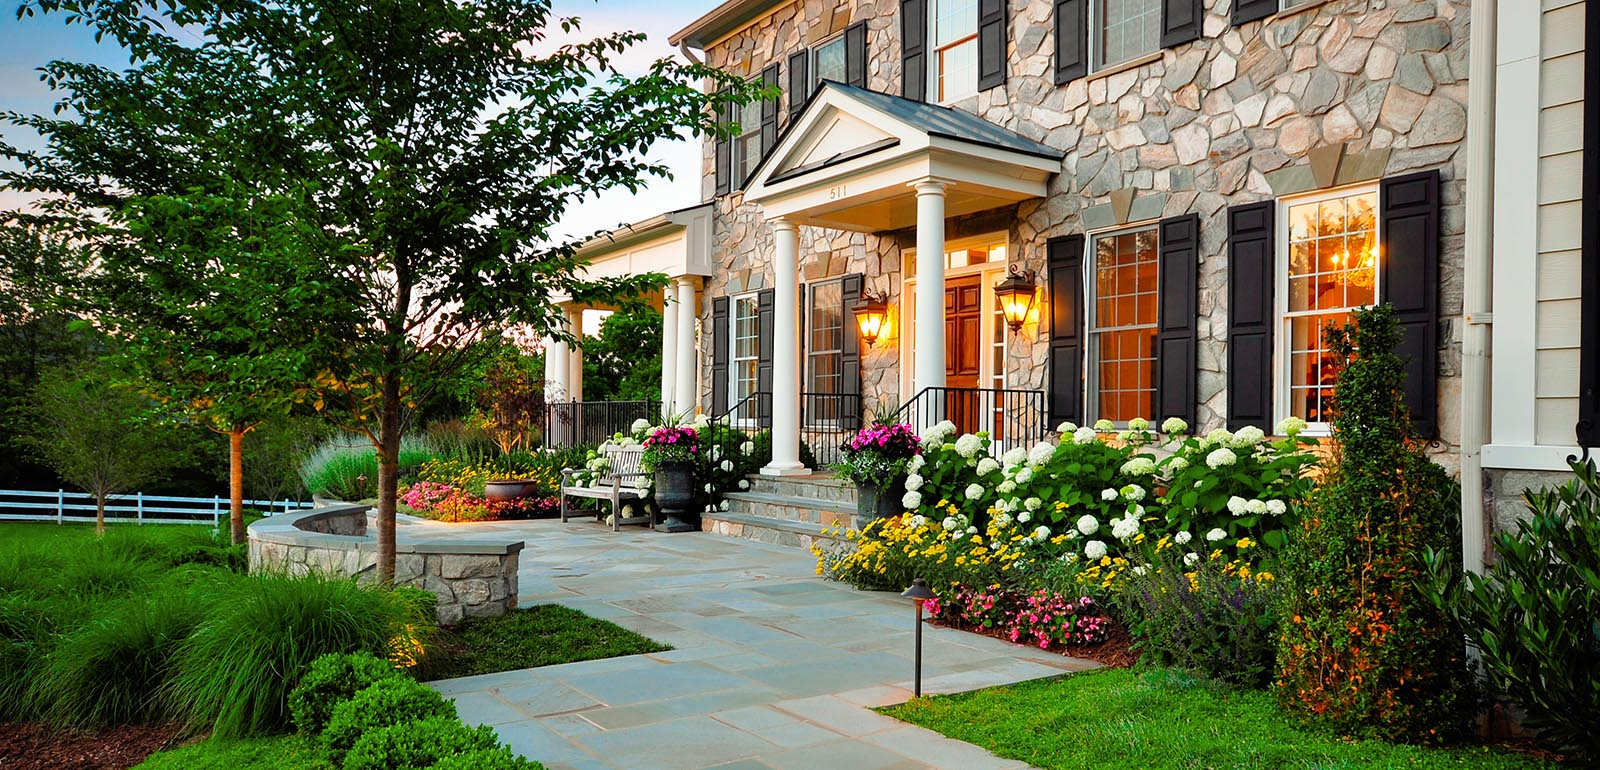 Spruce up the yard with flower beds. & Forget The Traditional Look \u2013 Modern Front Yard Landscaping Ideas